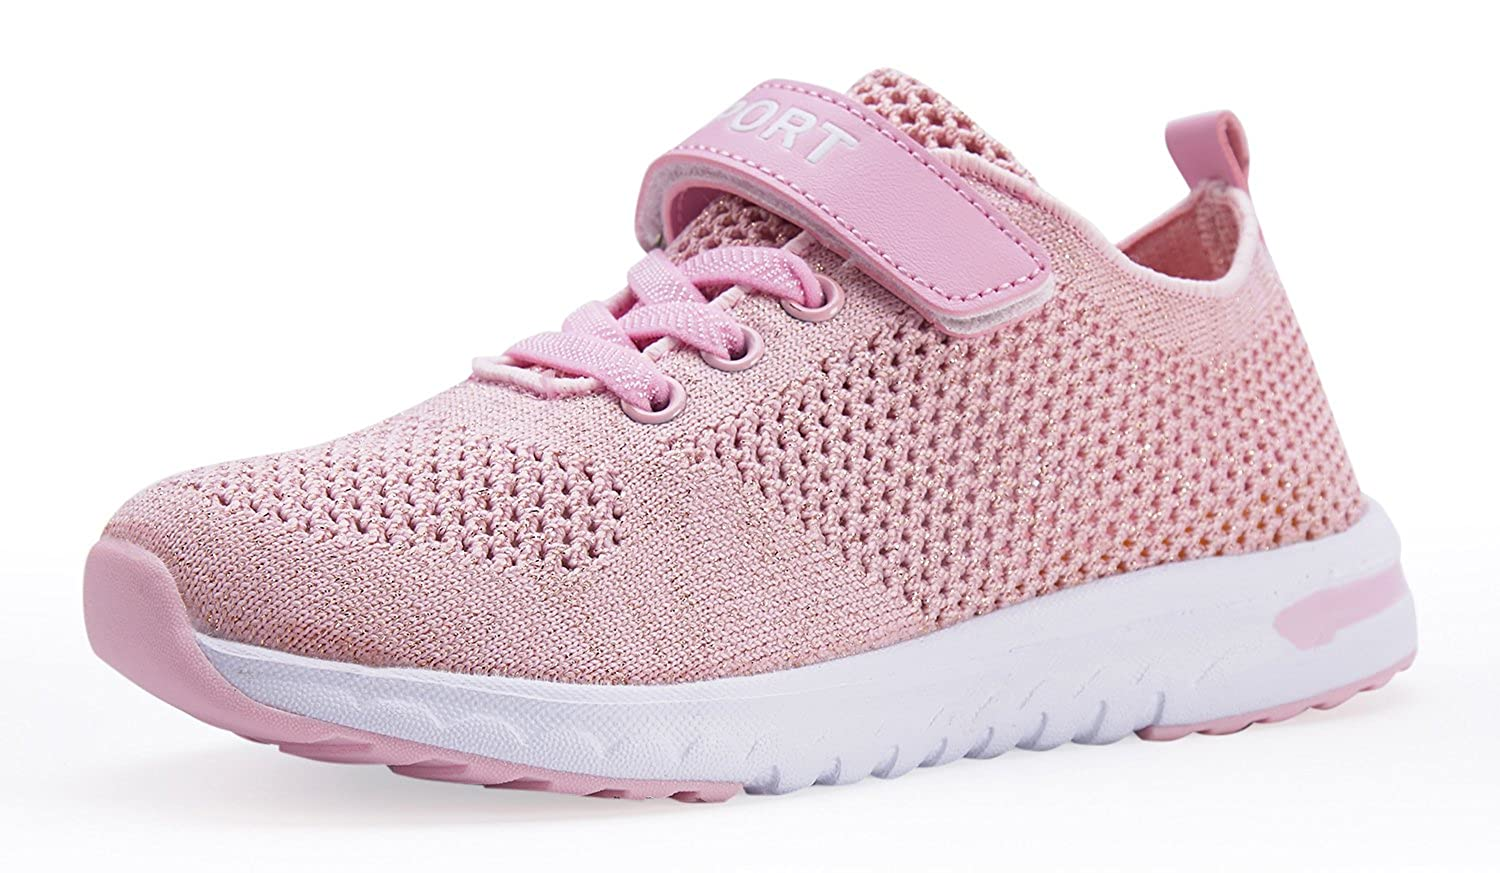 Casbeam Breathable Ventilation Girls Sneakers with Flyknit Upper Vamp Lightweight Shoes